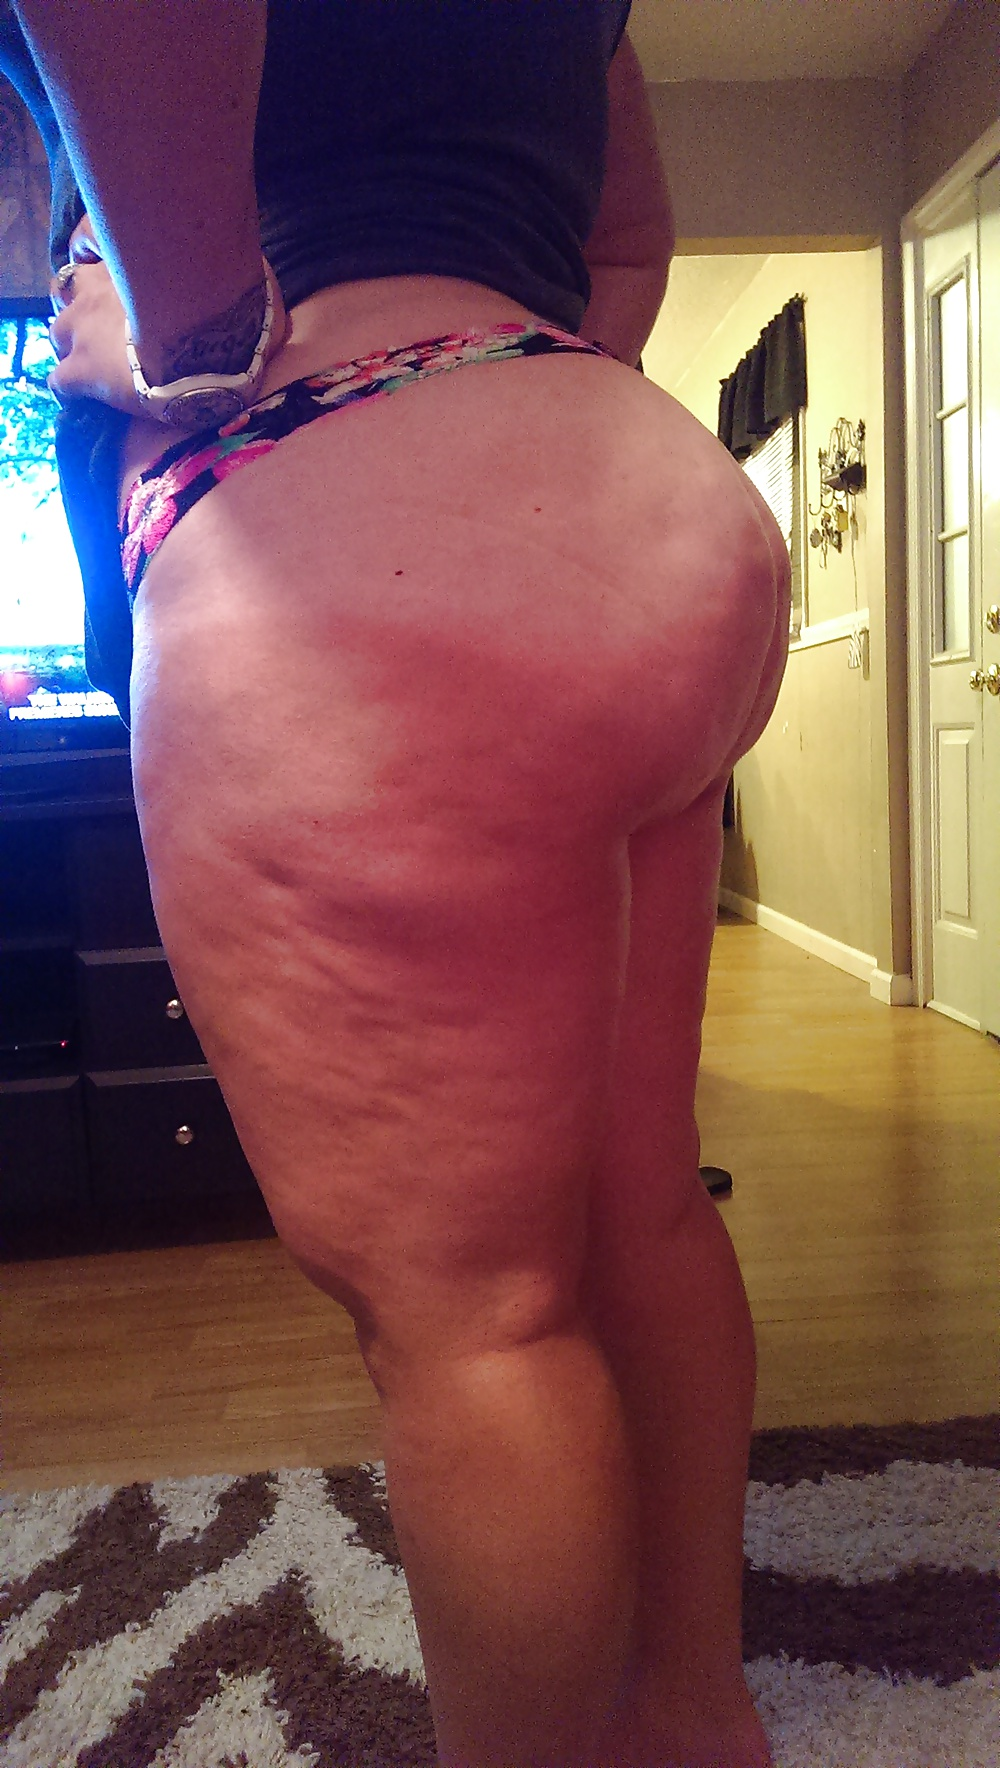 Big booty pawg seethrew can see the tats on her ass omfg - 1 6